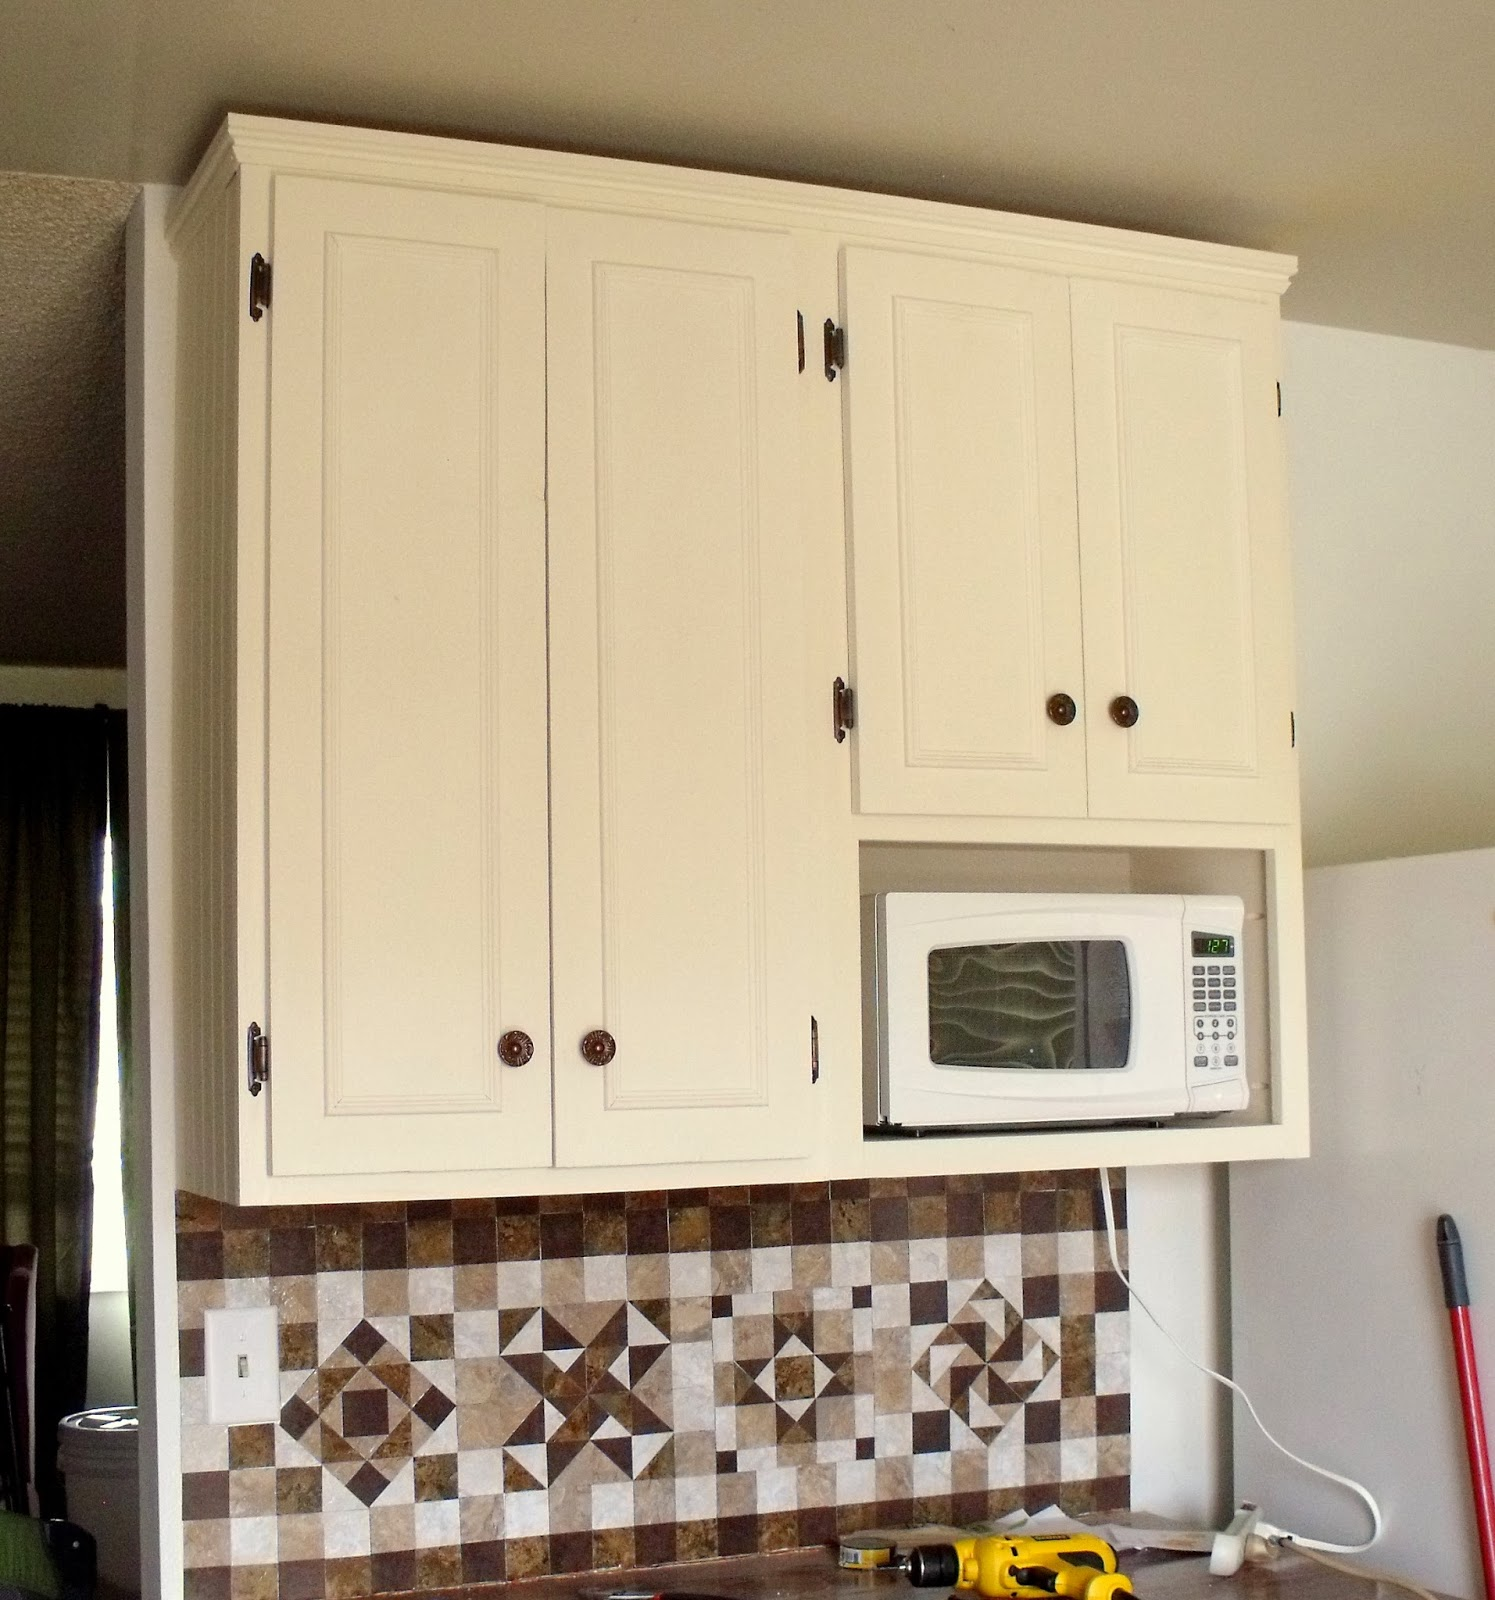 Kitchen Craft Cabinet Doors The Pursuit Of Craft Making A Kitchen Part 8 Prettying Up The